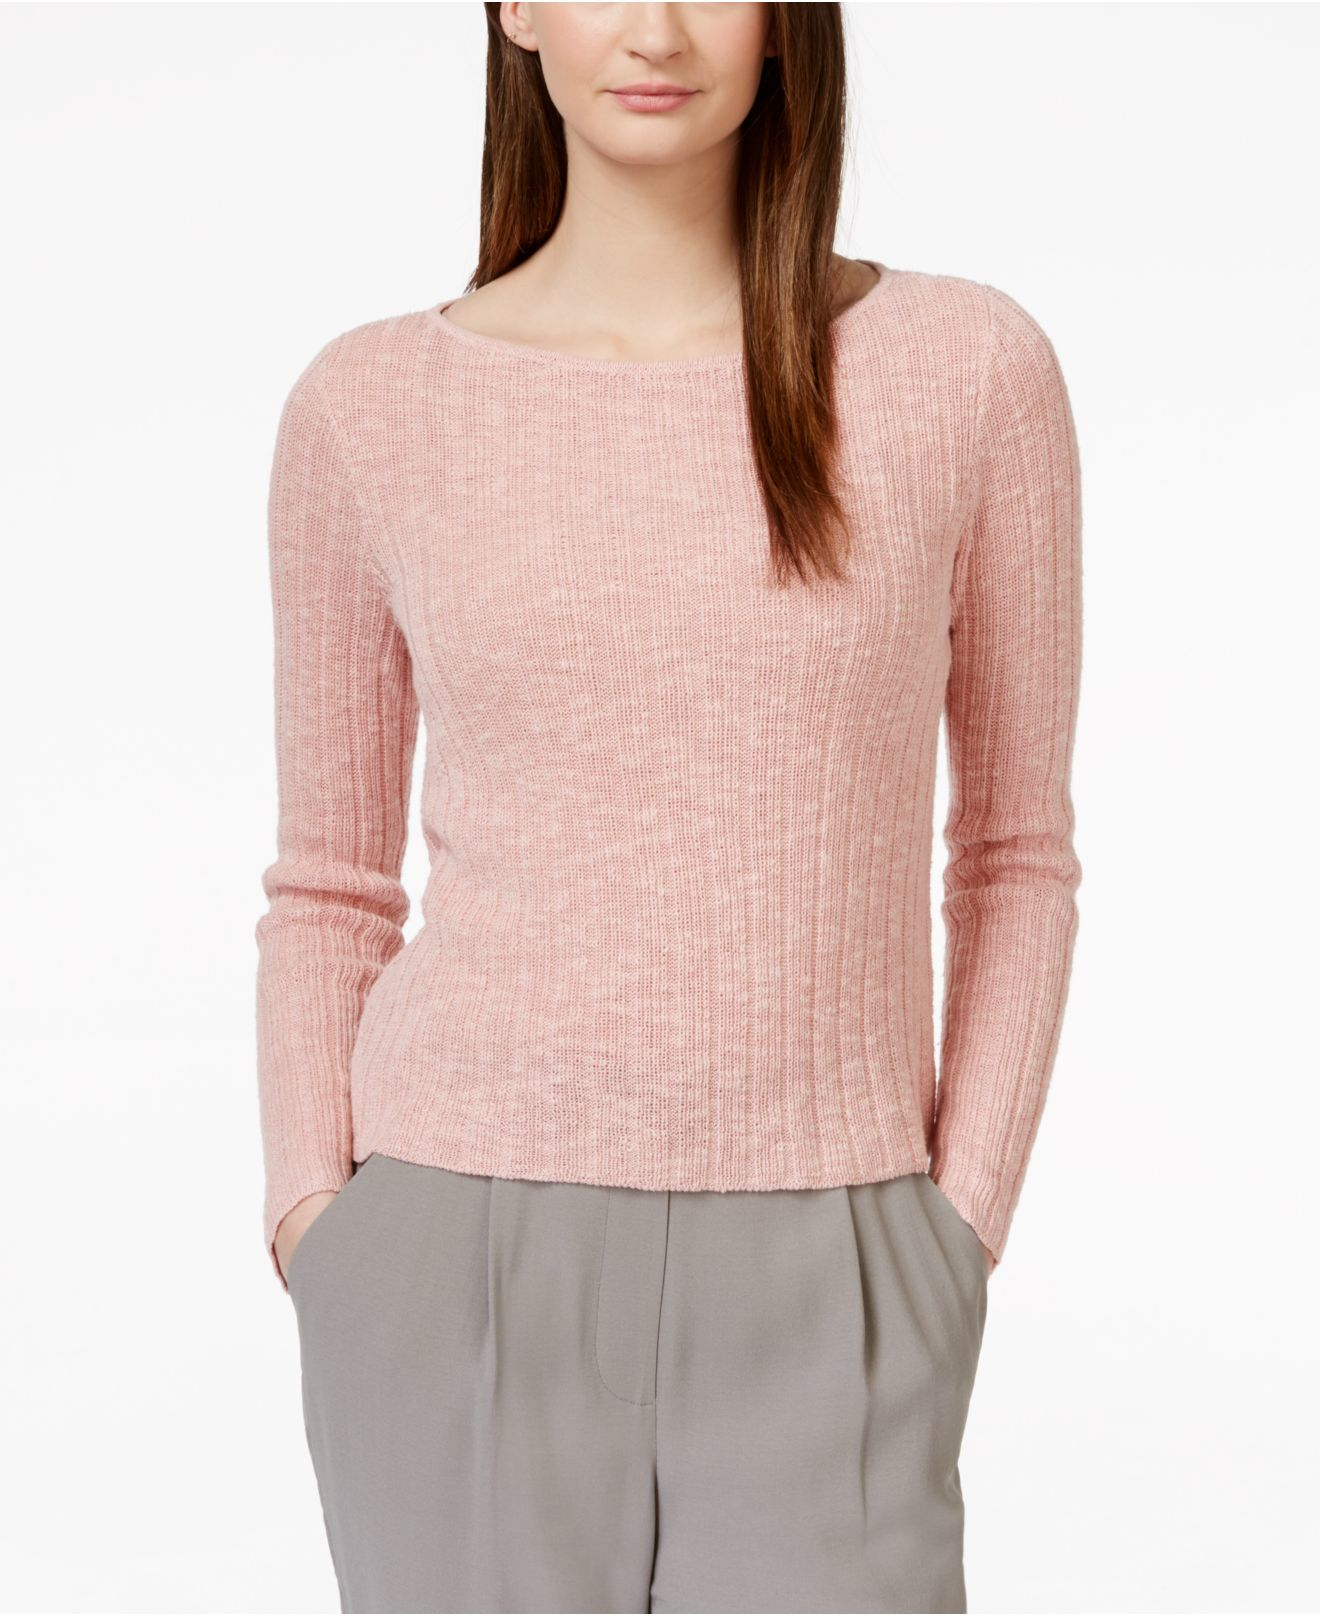 Eileen fisher Bateau-neck Ribbed Sweater in Pink | Lyst